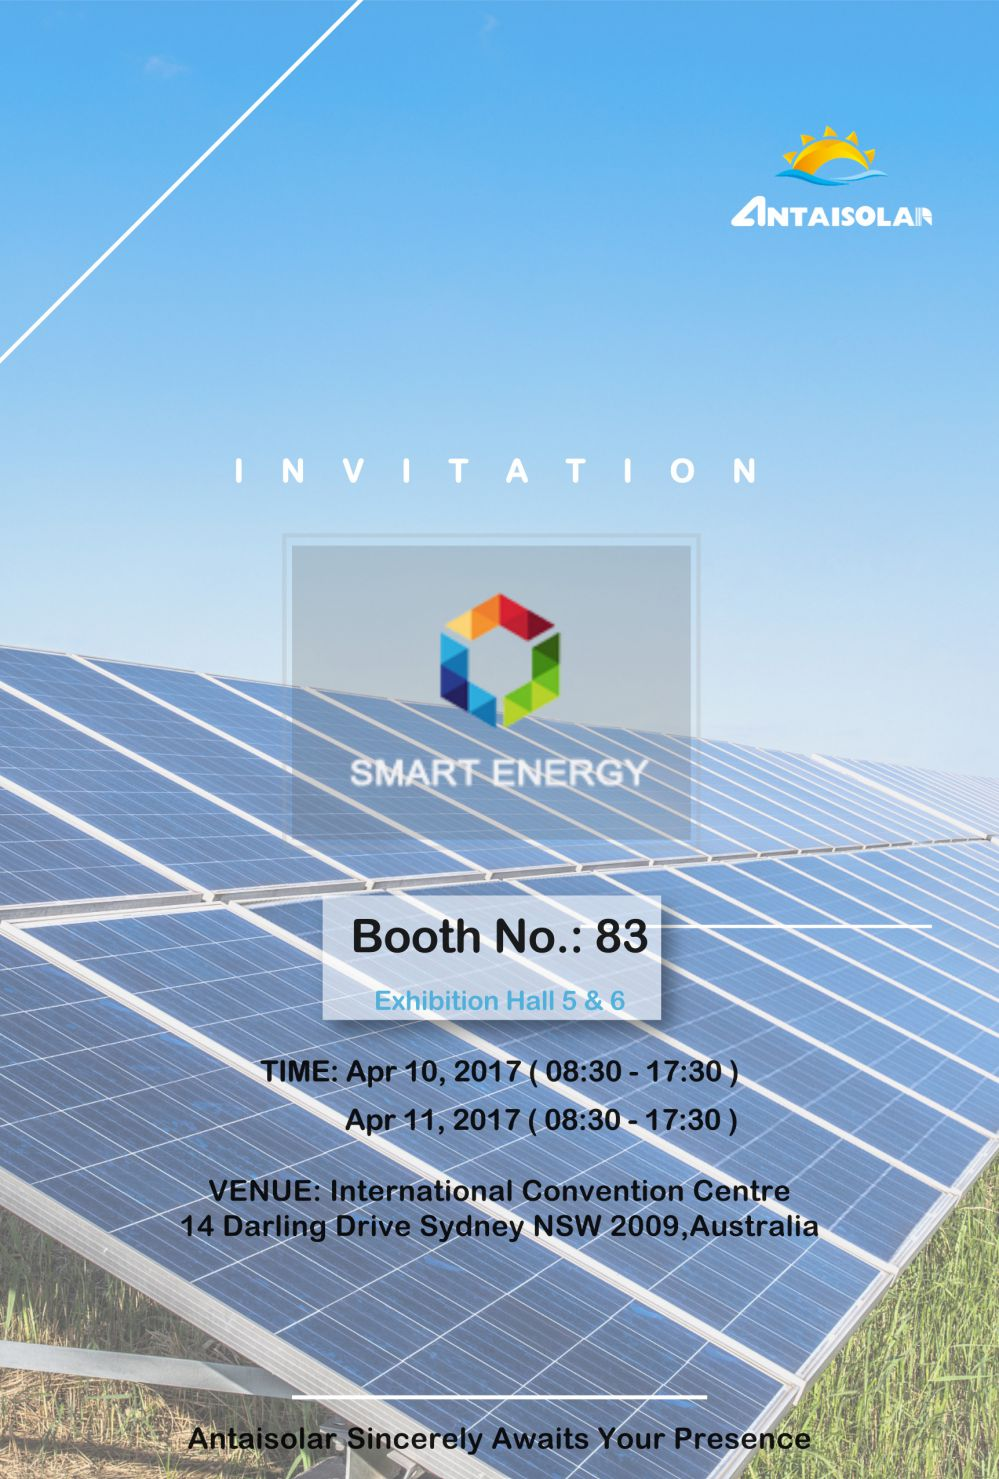 Antaisolar will attend the smart energy in Sydney, Australia